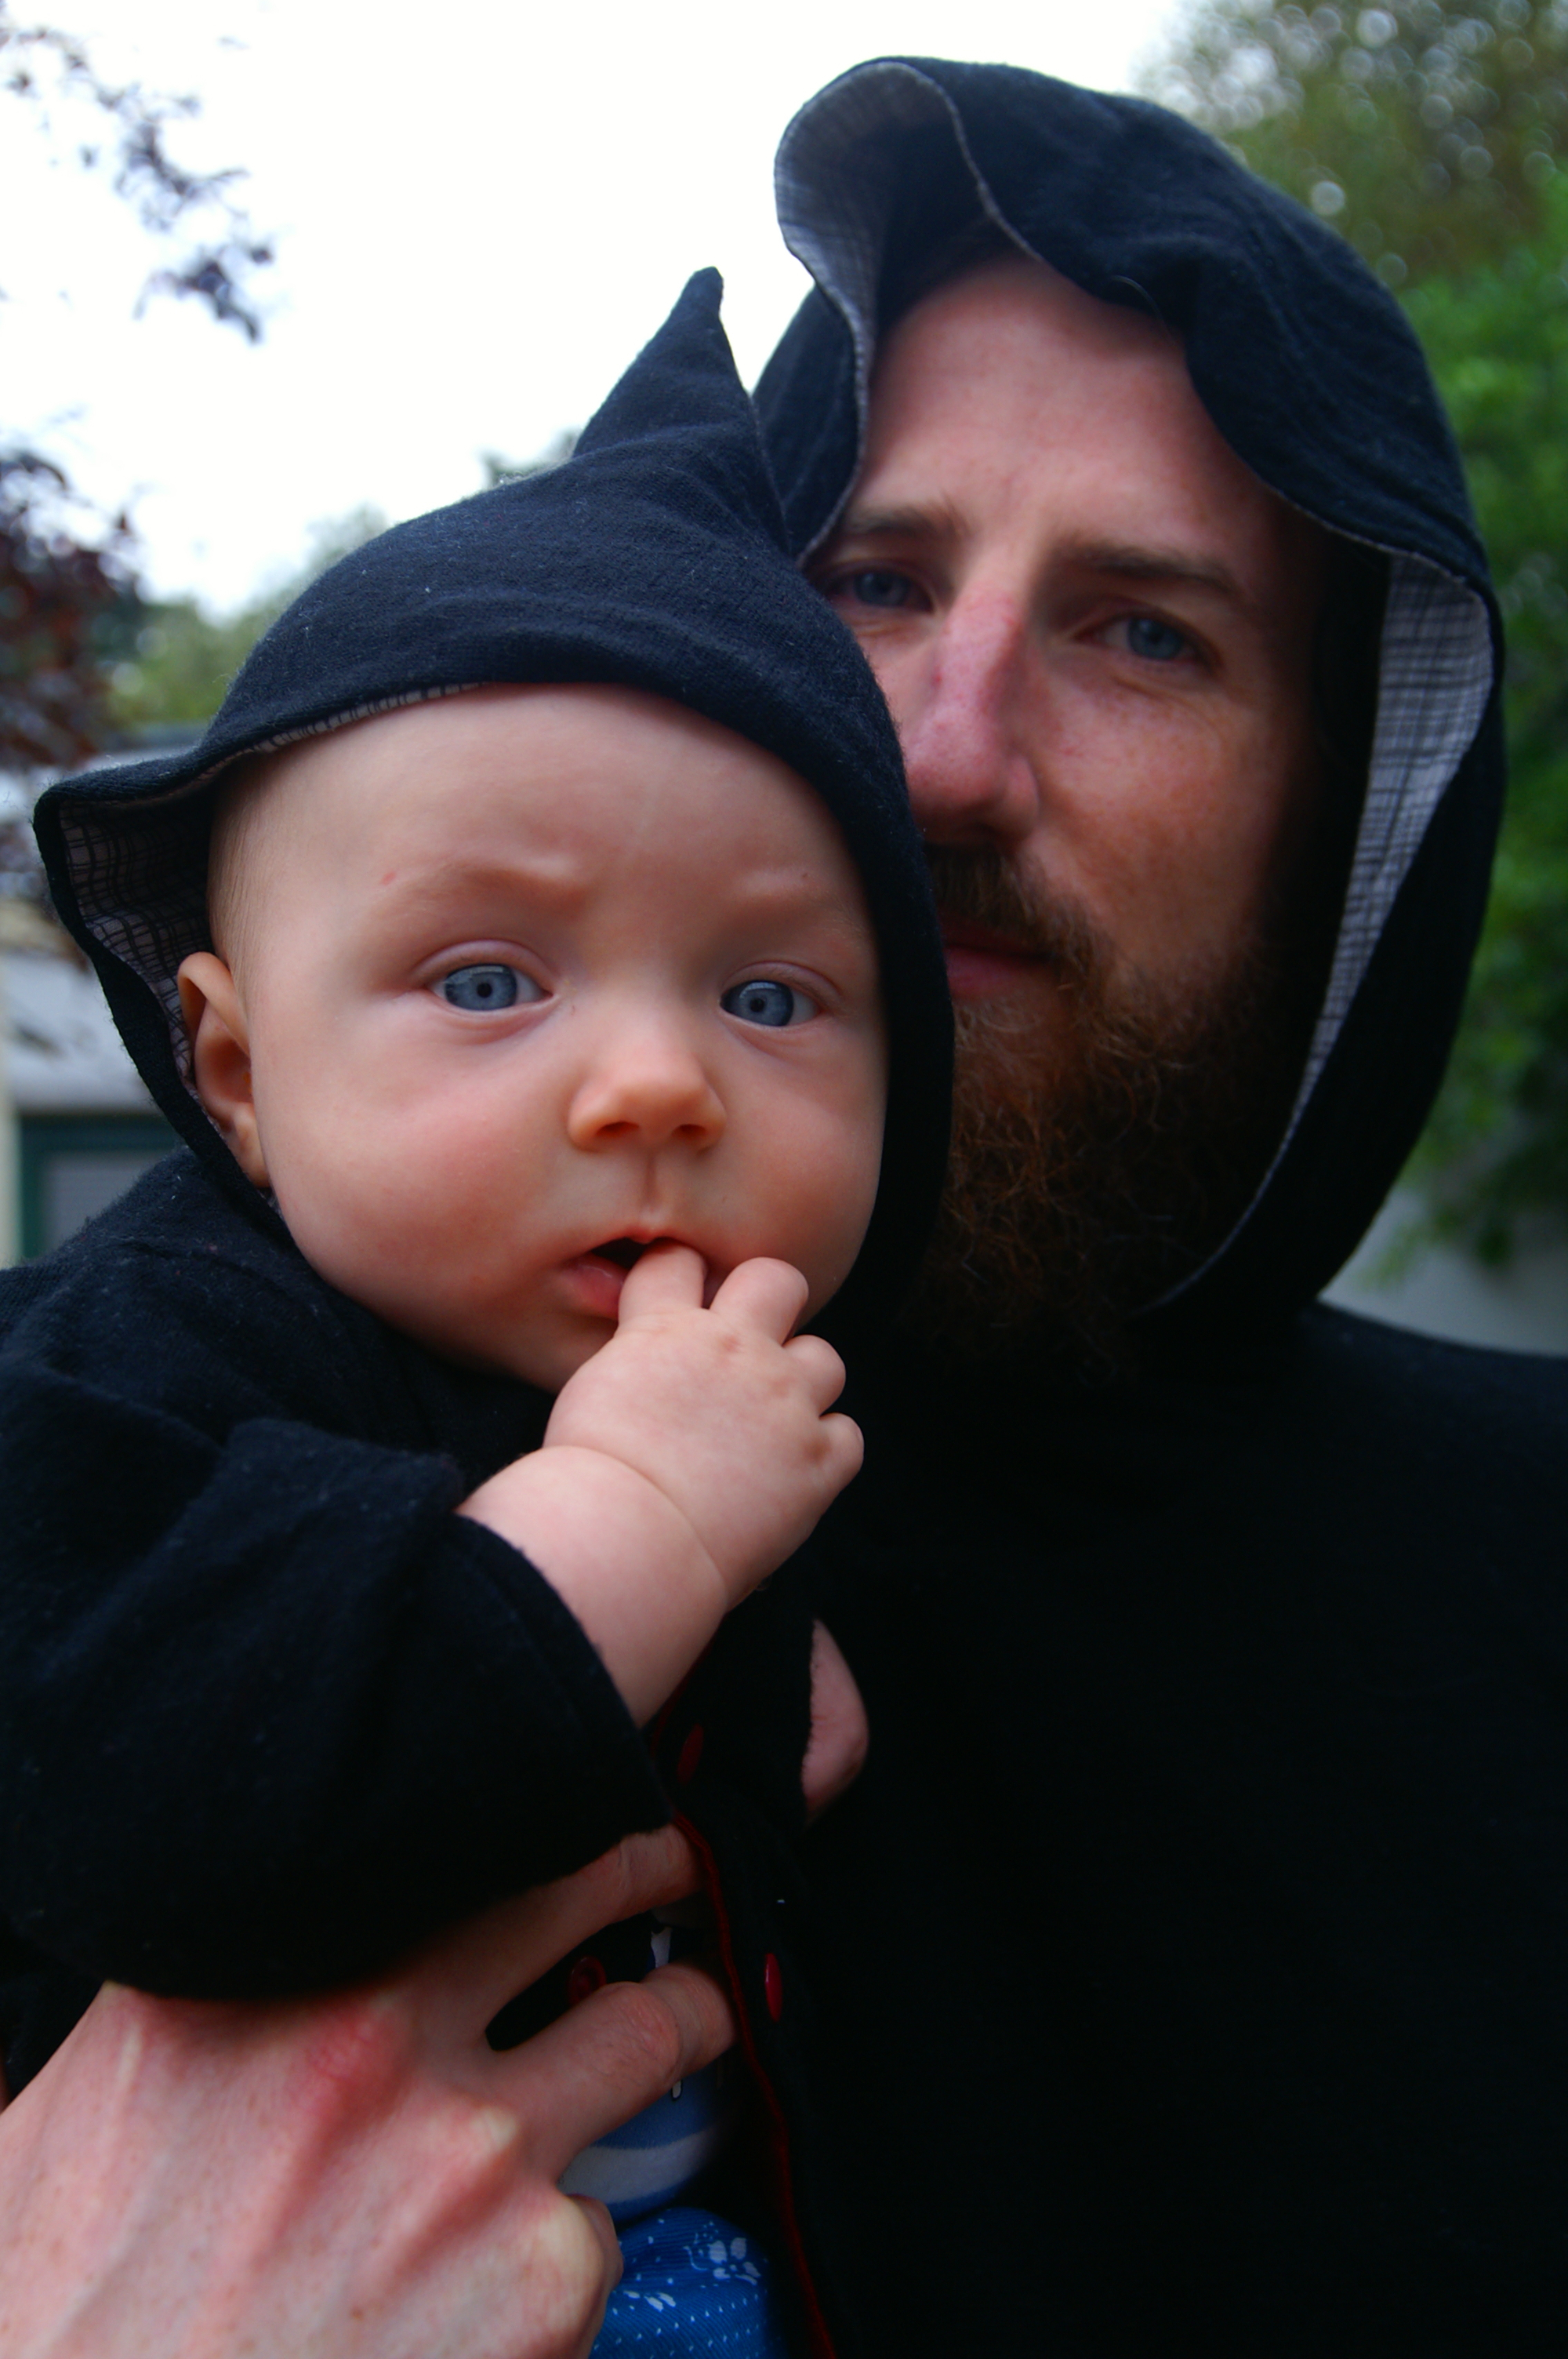 For Rich's birthday when I was 6 months pregnant I made him a pile of clothes, with mini versions. Here are my two boys in their matching black merino hoodies. I love black on babies, I'll definitely be doing more of it.